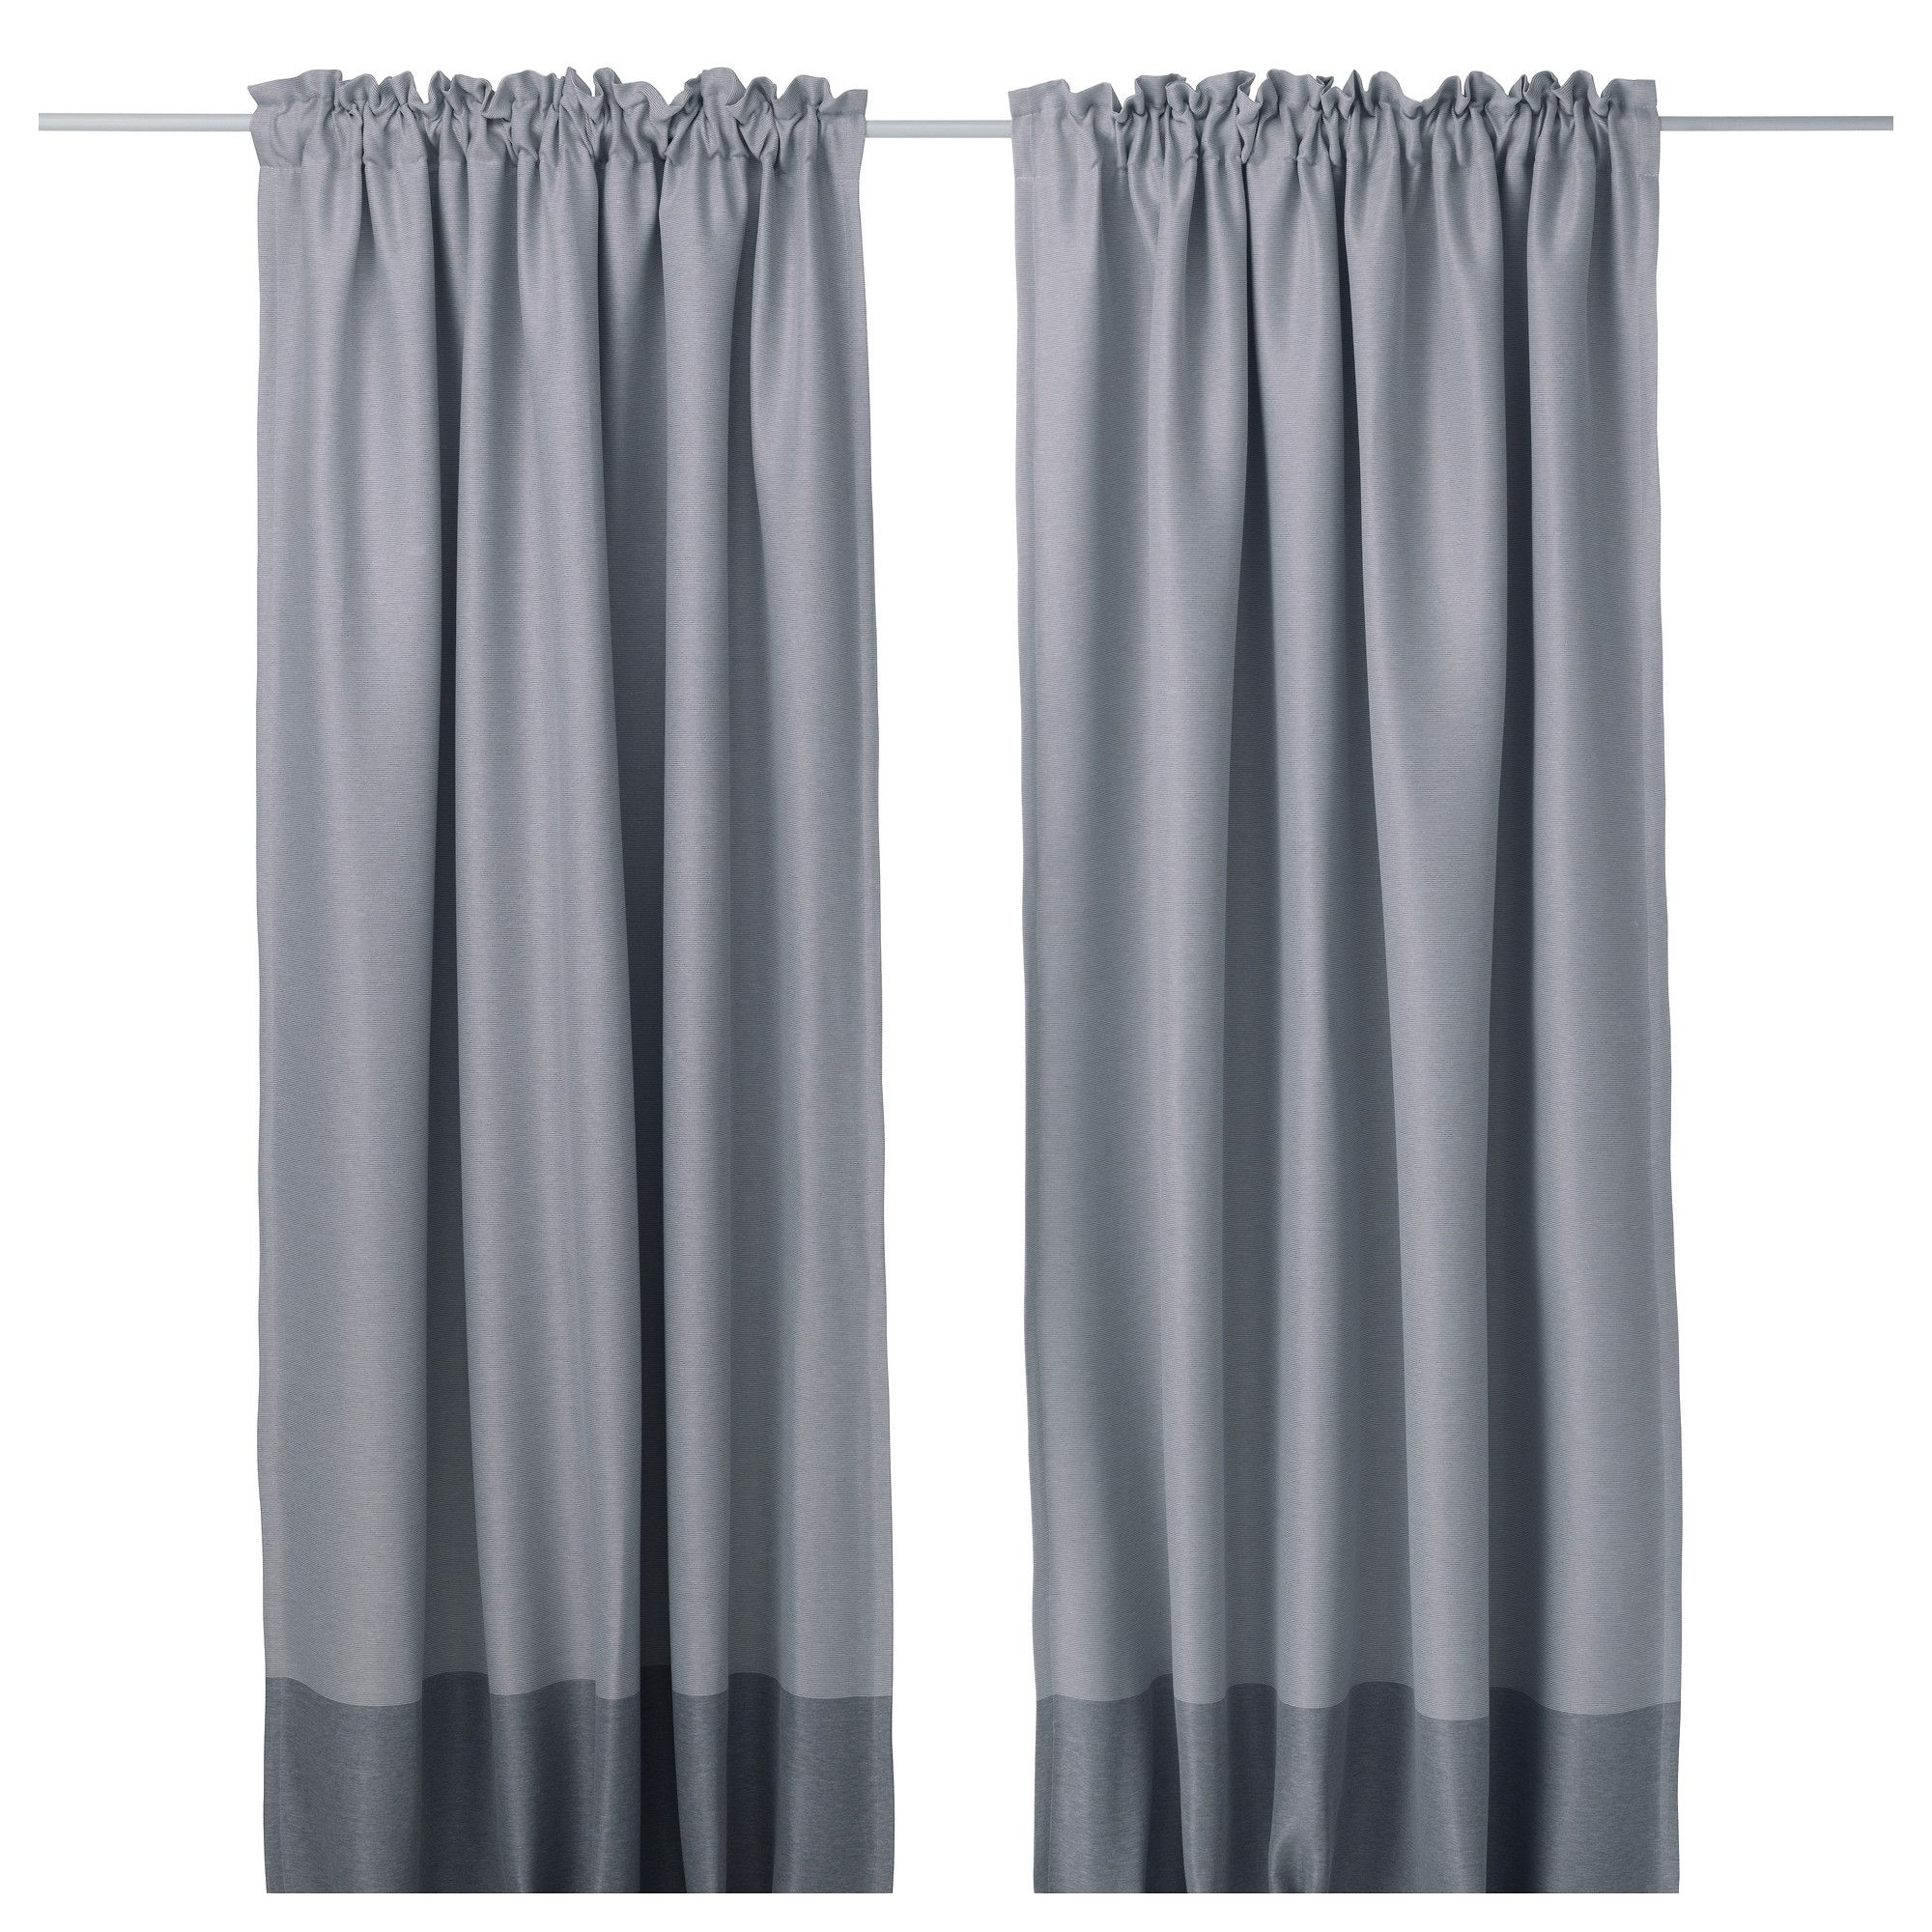 Marjun Blackout Curtains 1 Pair Ikea Within Thick Grey Curtains (View 10 of 15)